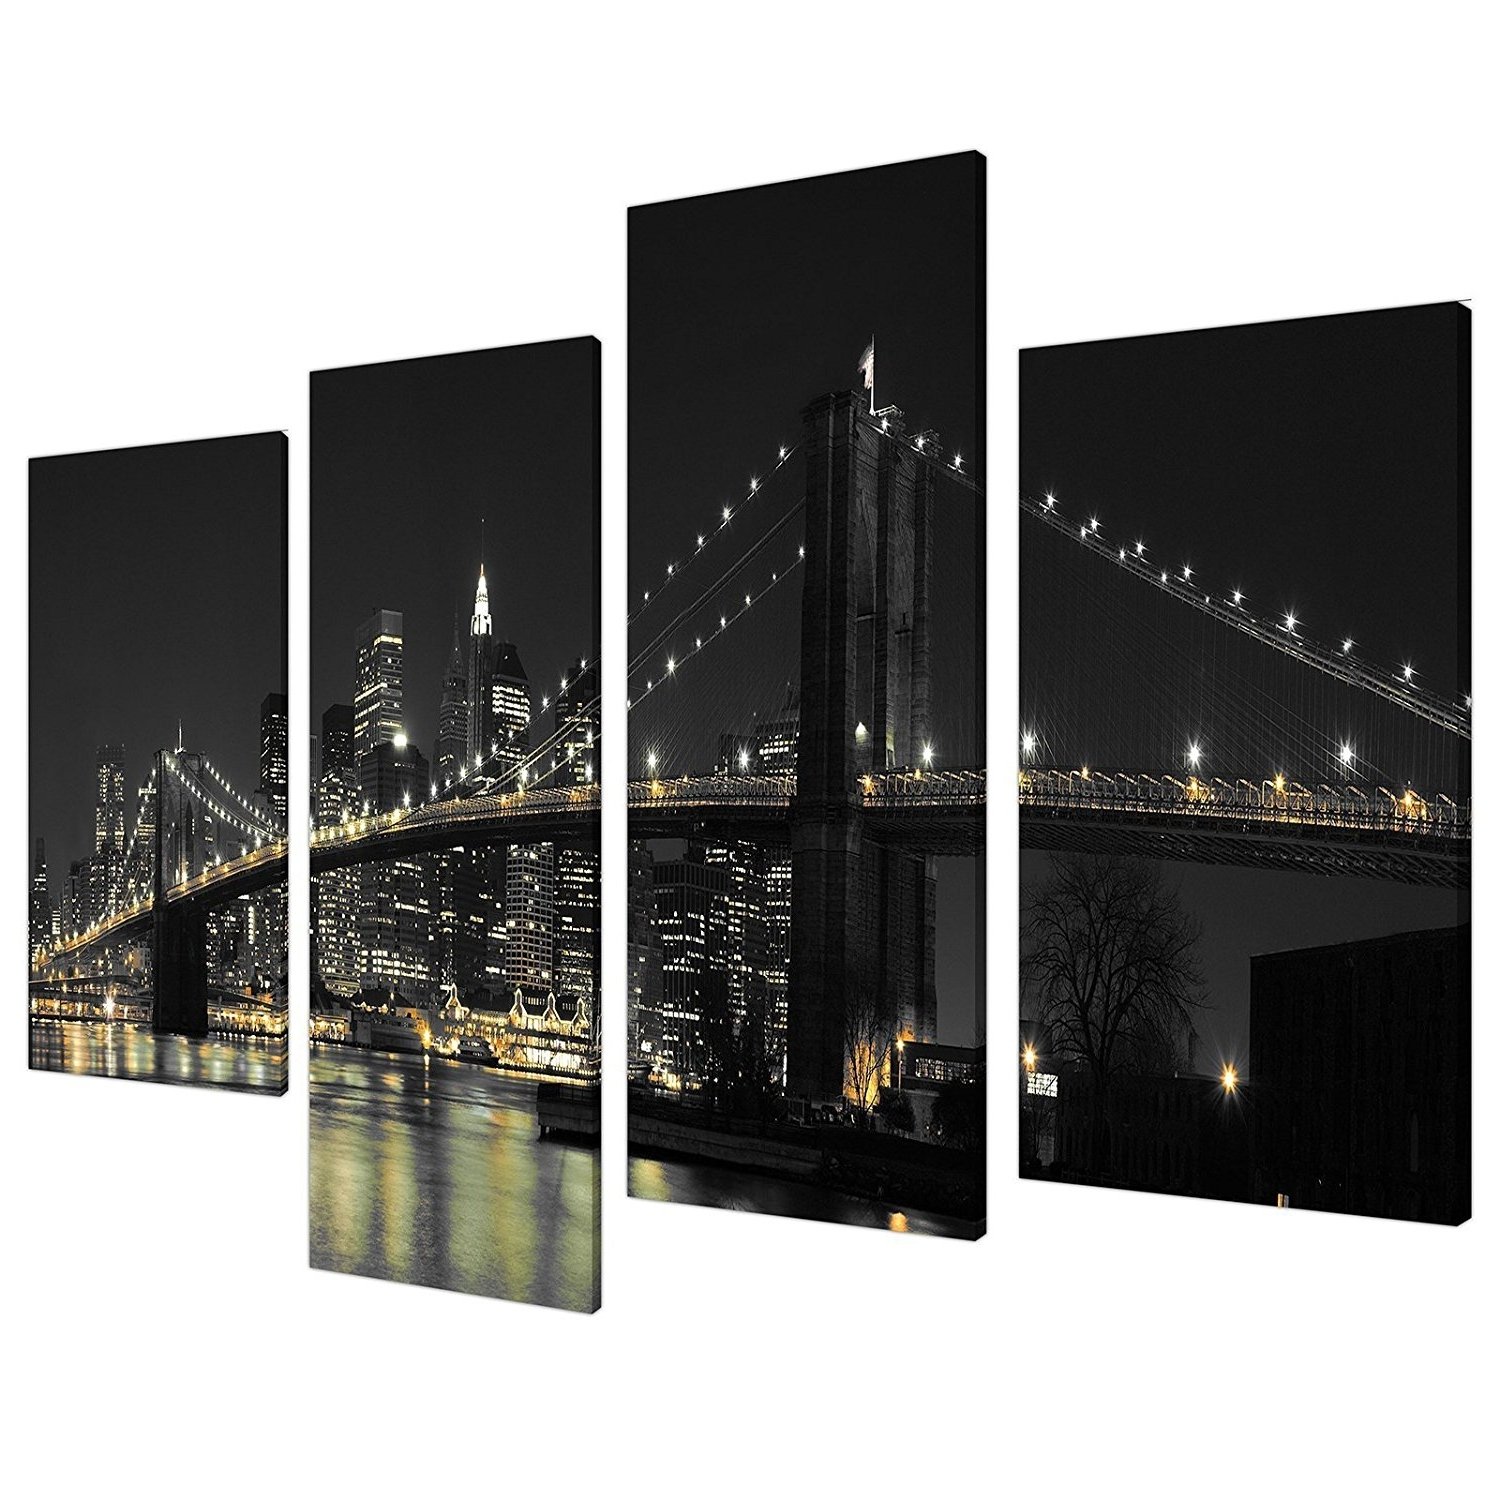 Most Popular Amazon: Large New York City Canvas Wall Art Pictures Of Nyc In Black And White New York Canvas Wall Art (View 10 of 15)